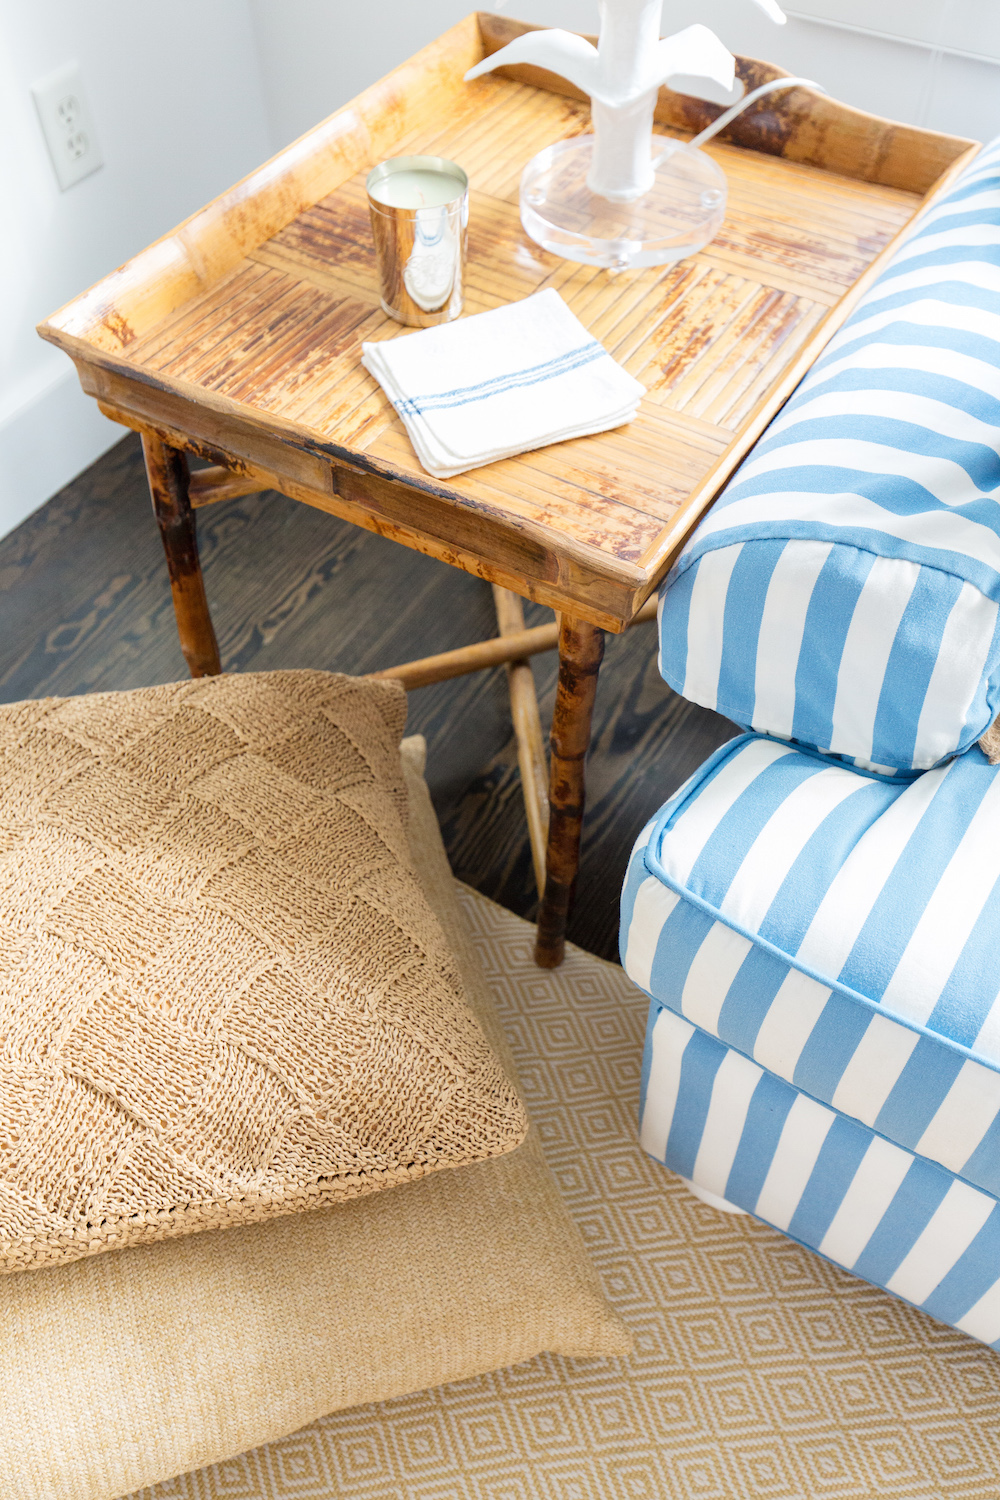 Design Darling Nantucket Living Room With Rattan End Tables Striped Sofas And Raffia Floor Pillows